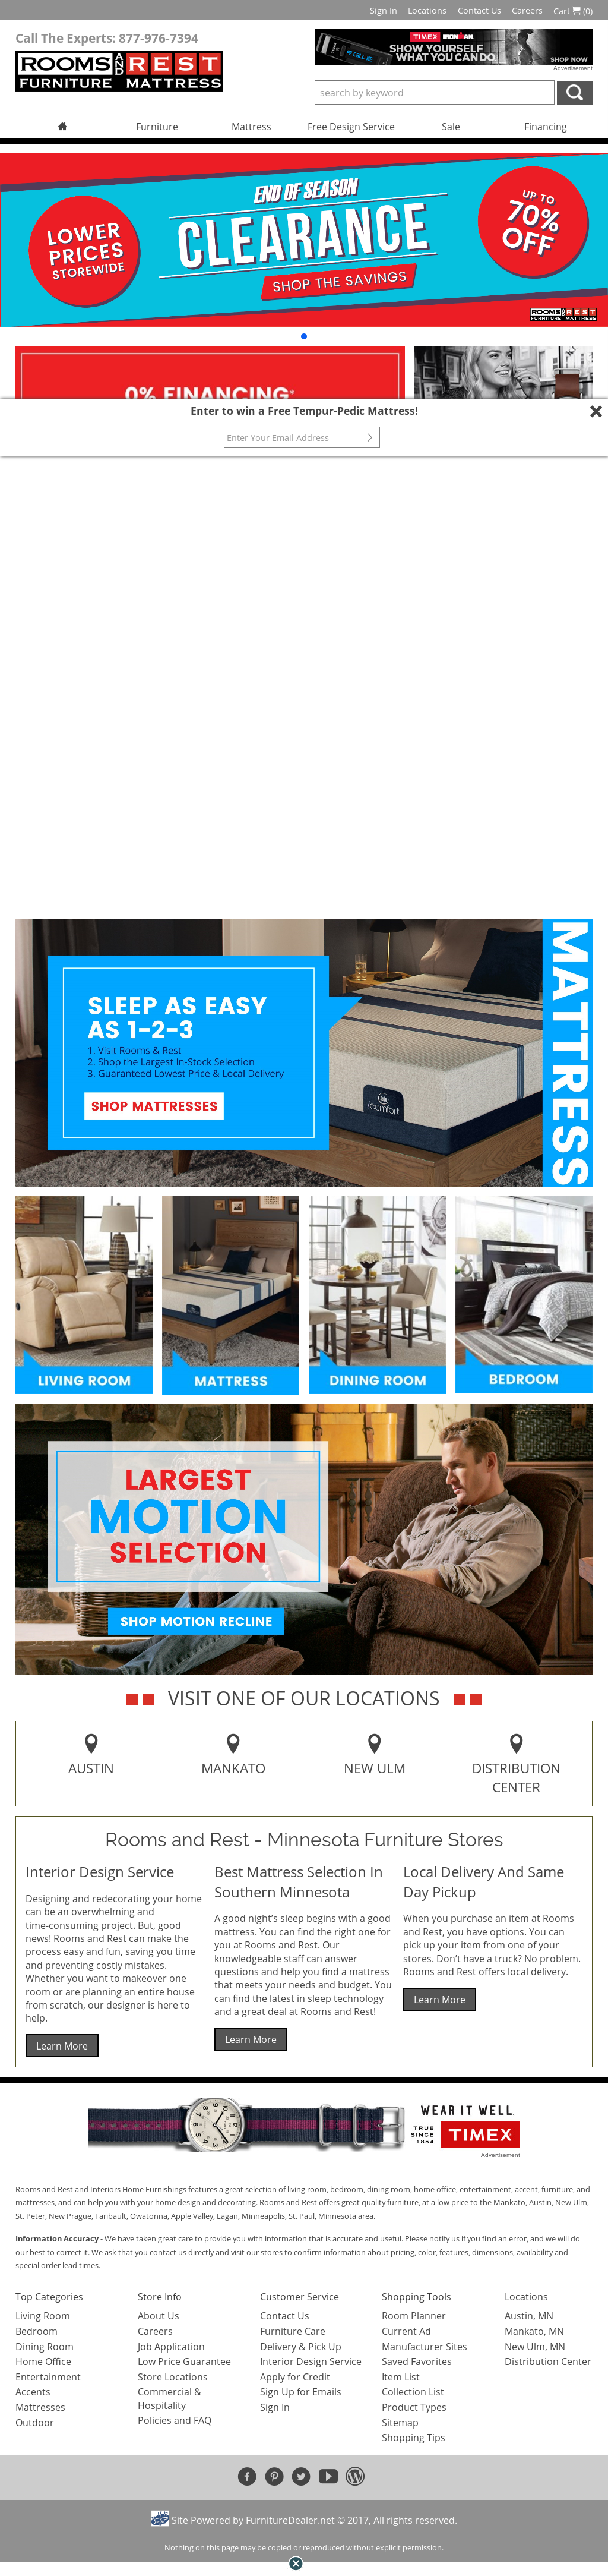 Rooms And Rest Furniture Competitors, Revenue and Employees - Owler ...